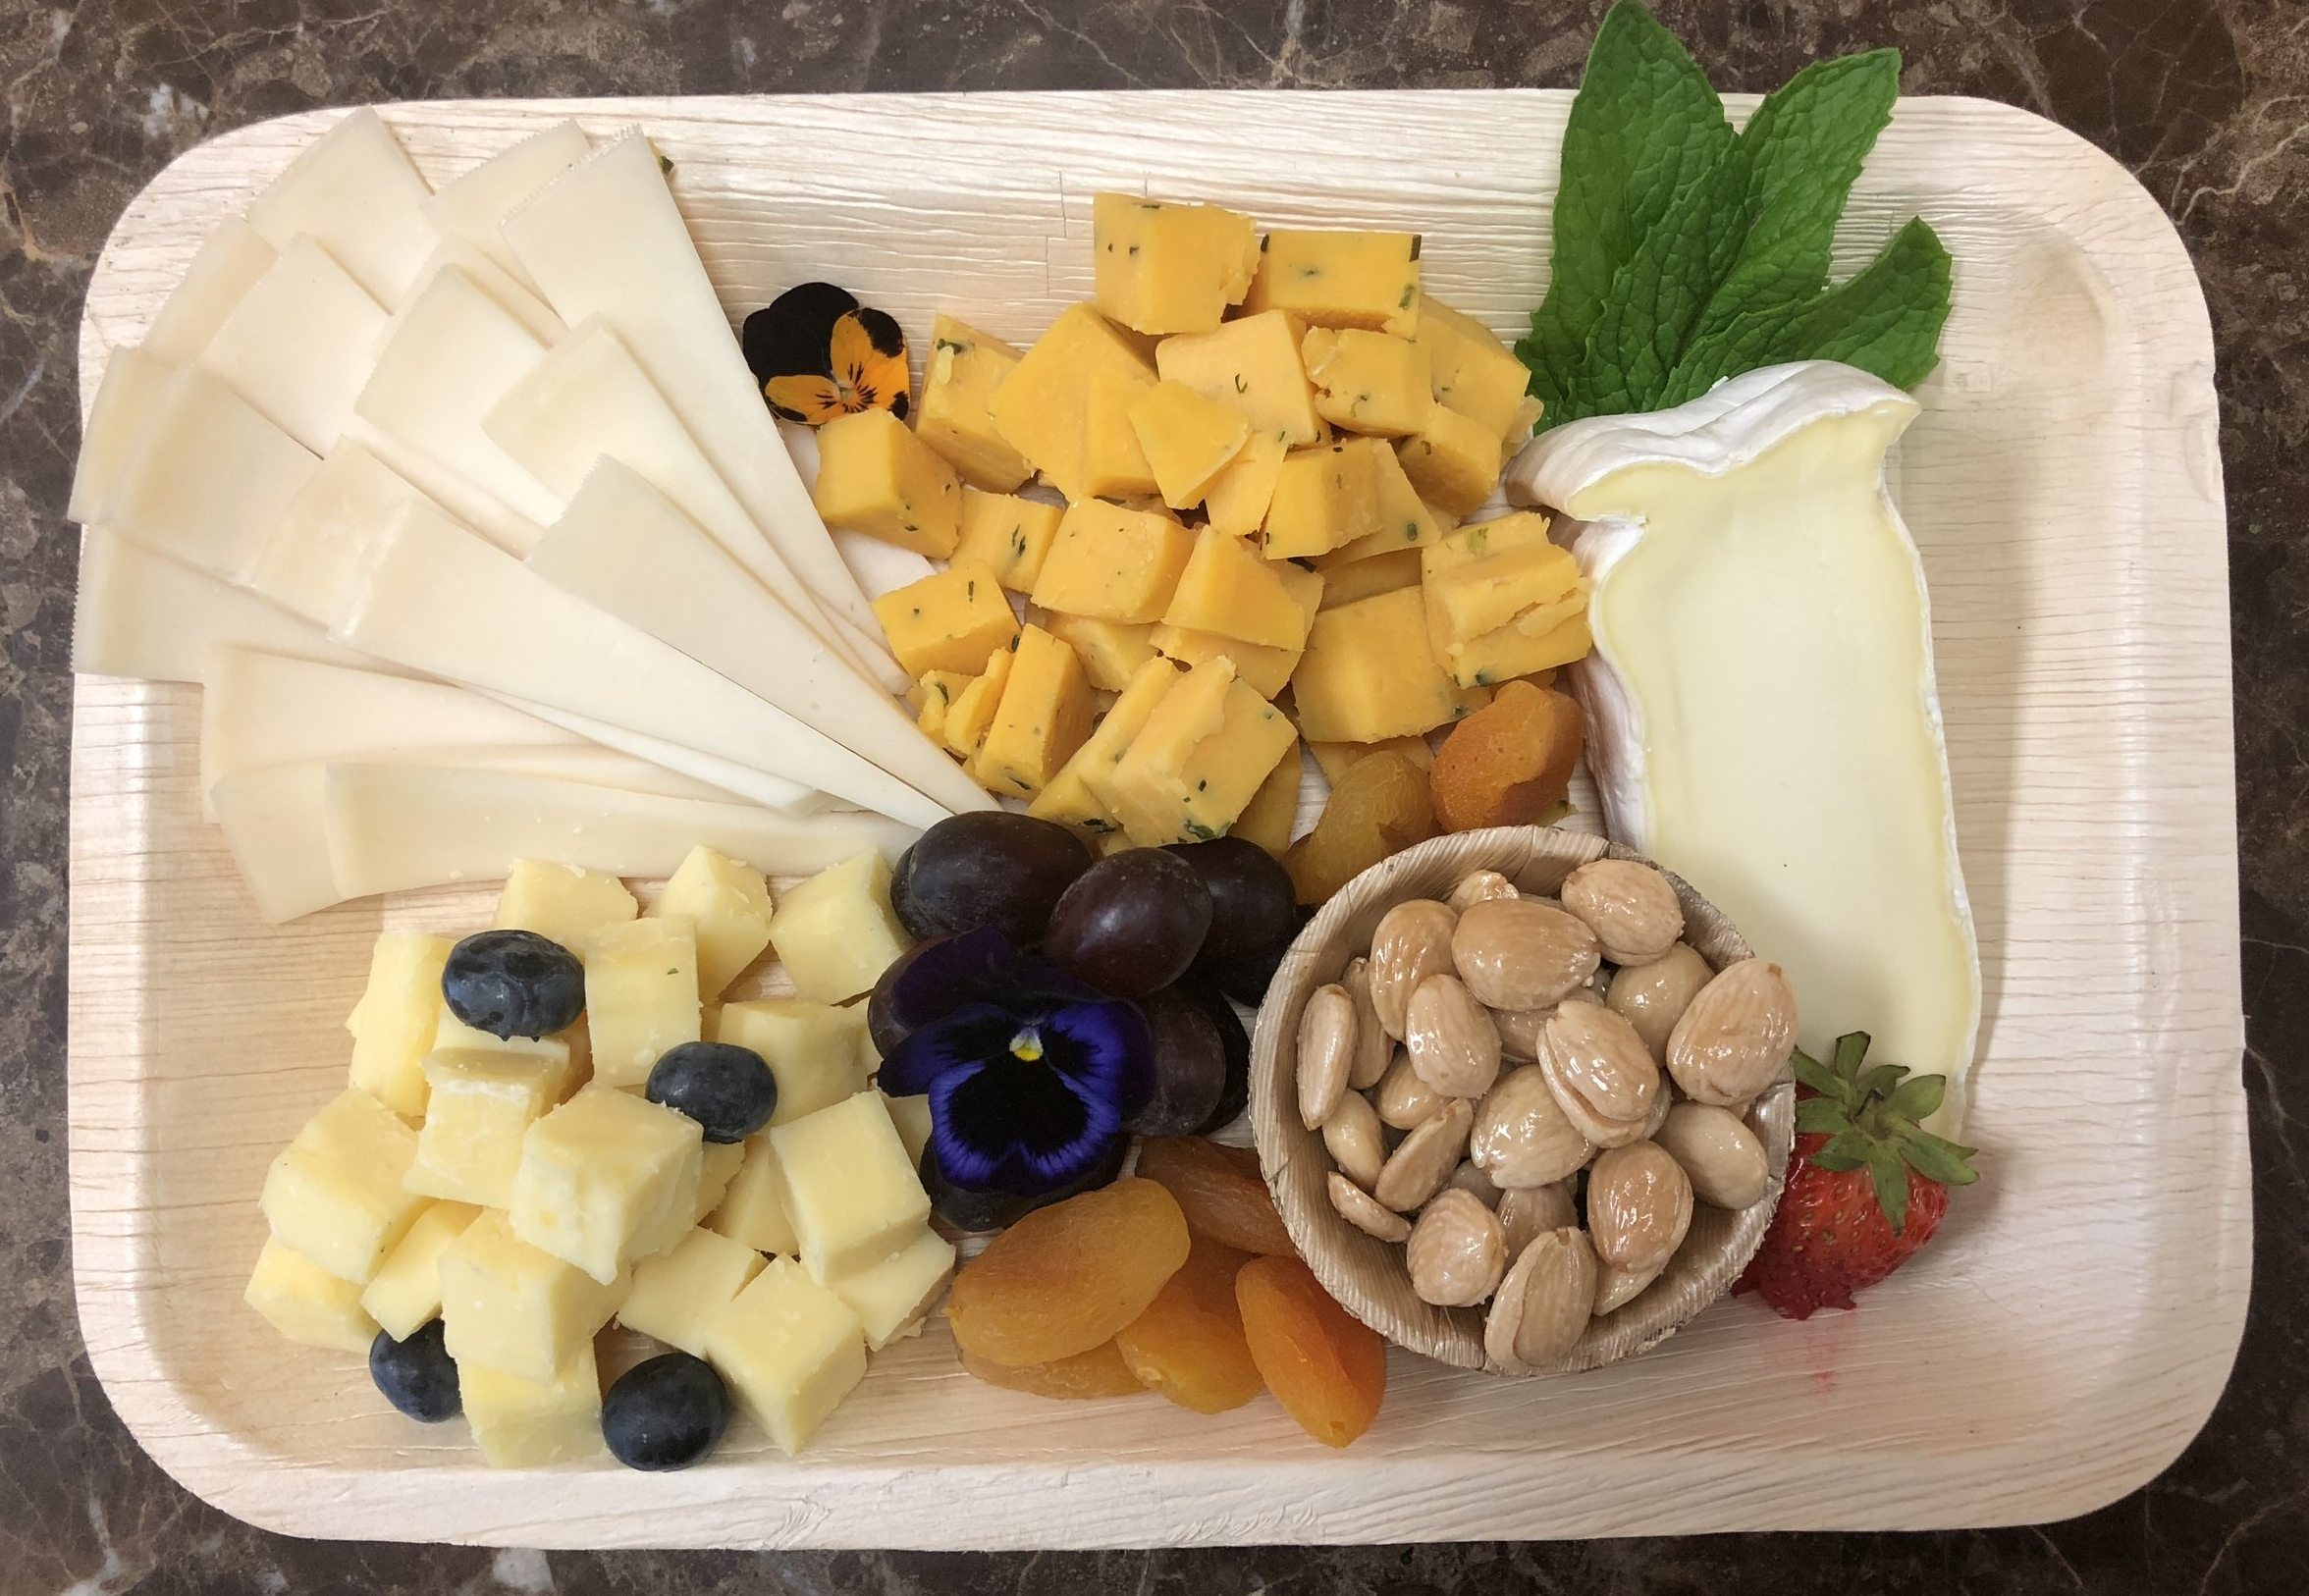 Small Cheese Plate - 3-4 Select cheese, nuts, fruits & mixed greens